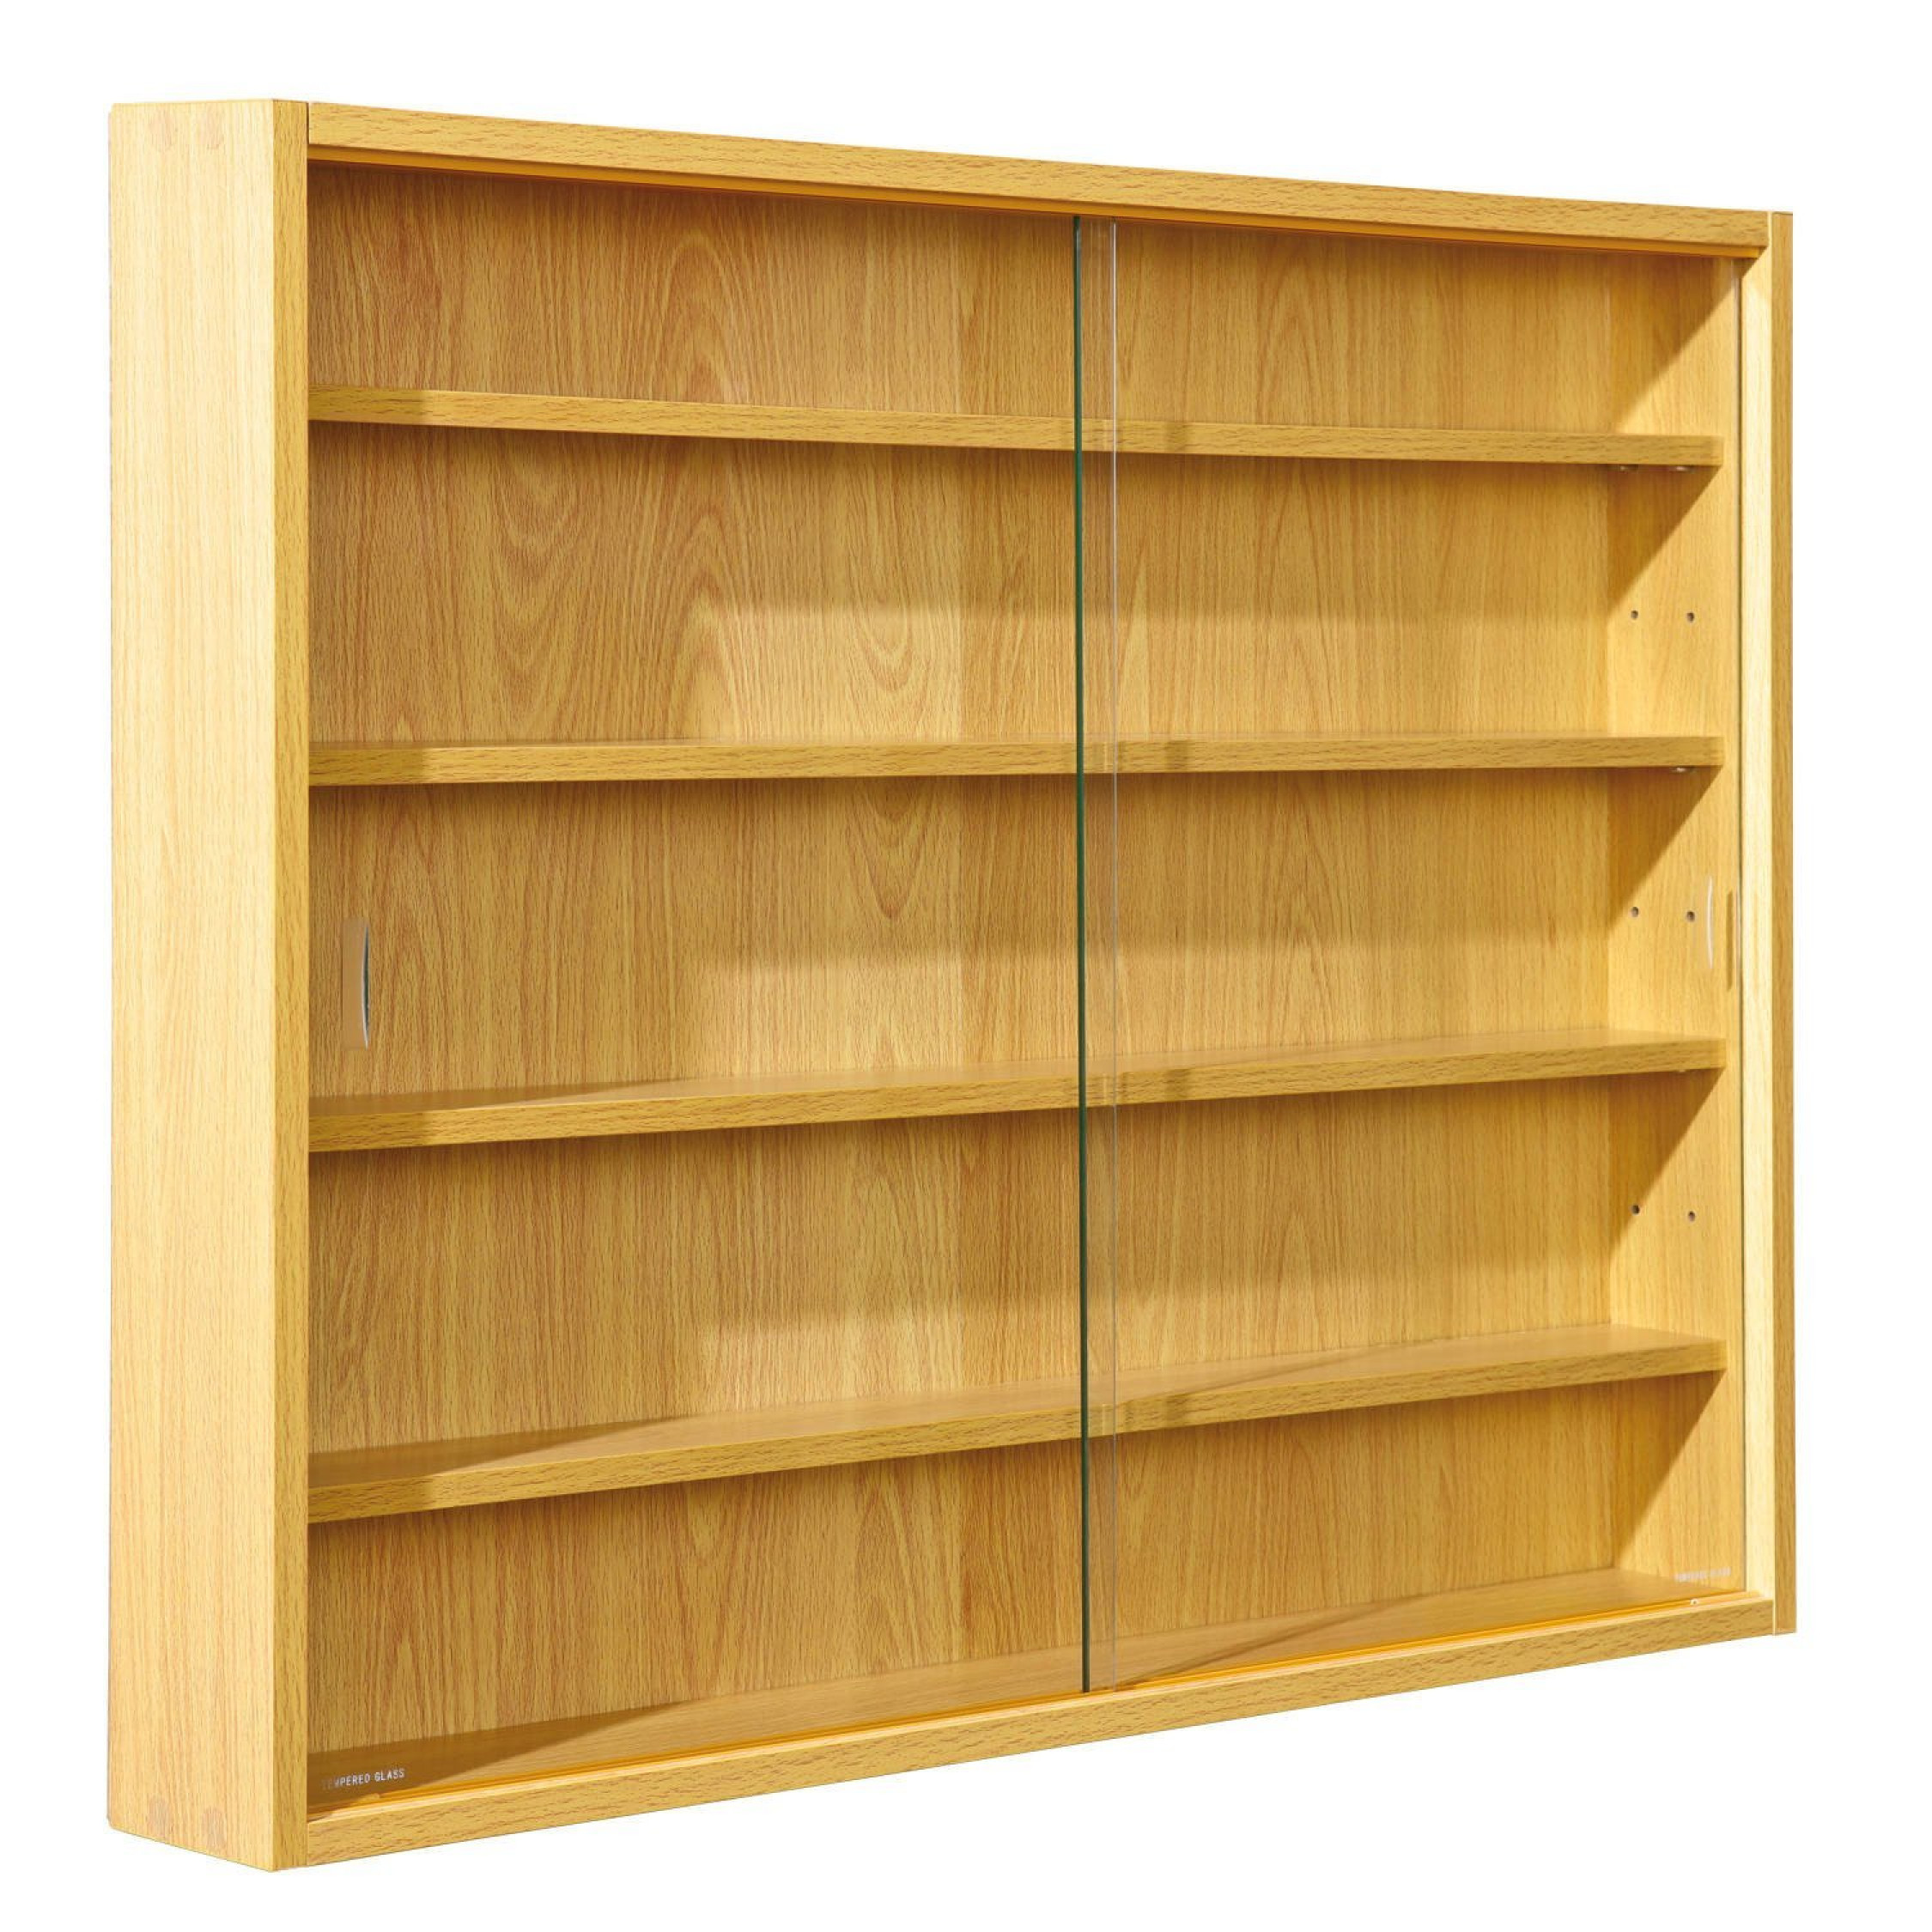 Image Is Loading Collectors Display Cabinet Acquario Wall Mounted  Wooden Shelves